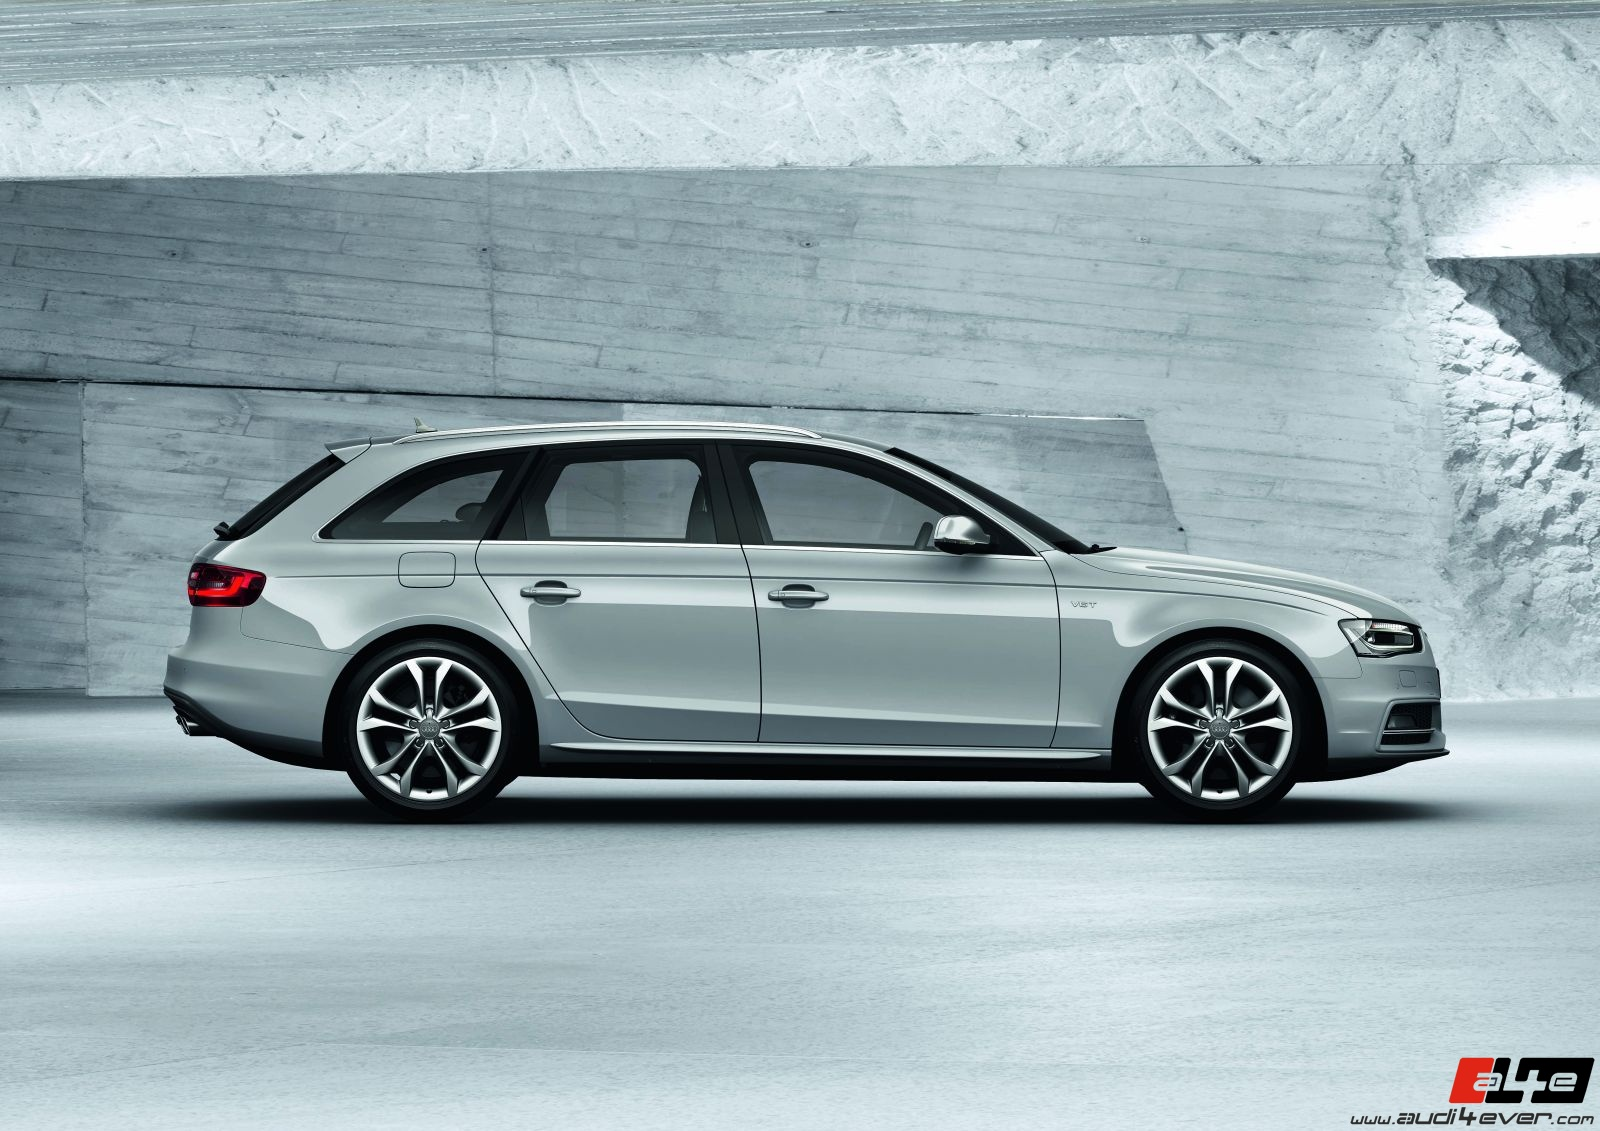 a4e gallery audi a4 b8 audi s4 b8 avant facelift. Black Bedroom Furniture Sets. Home Design Ideas